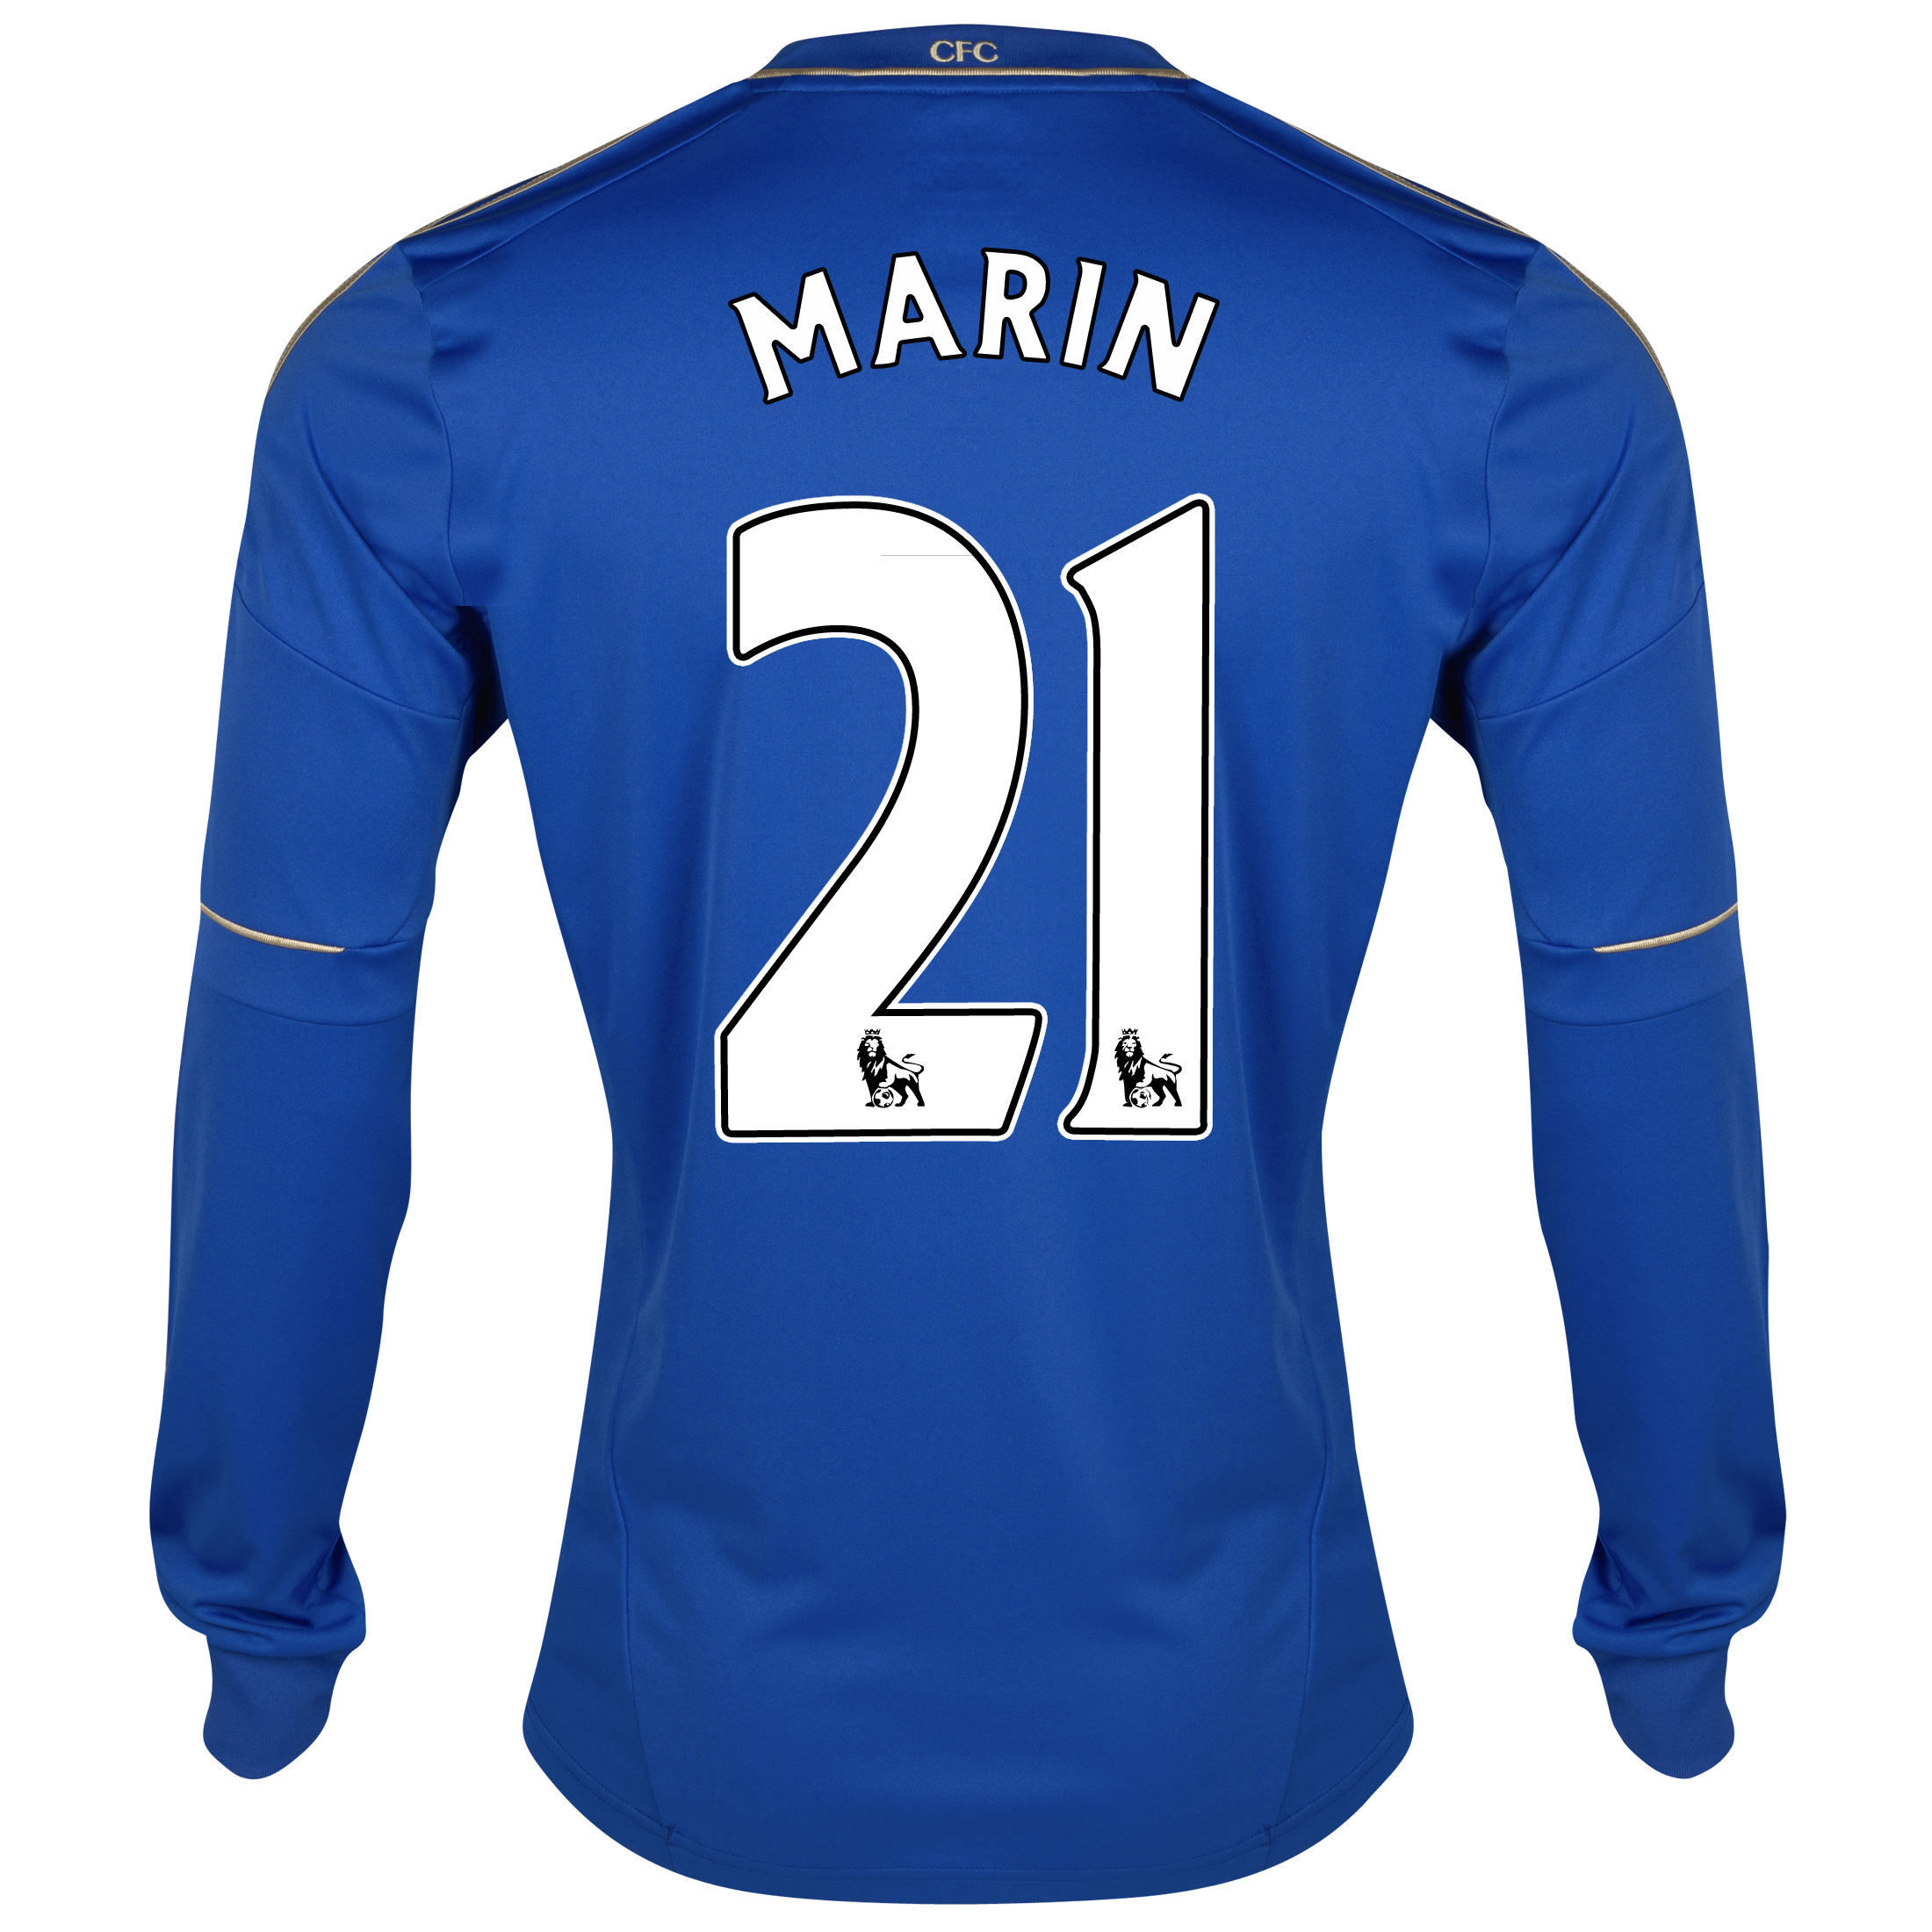 Chelsea Home Shirt 2012/13 - Long Sleeved - Youths with Marin 21 printing